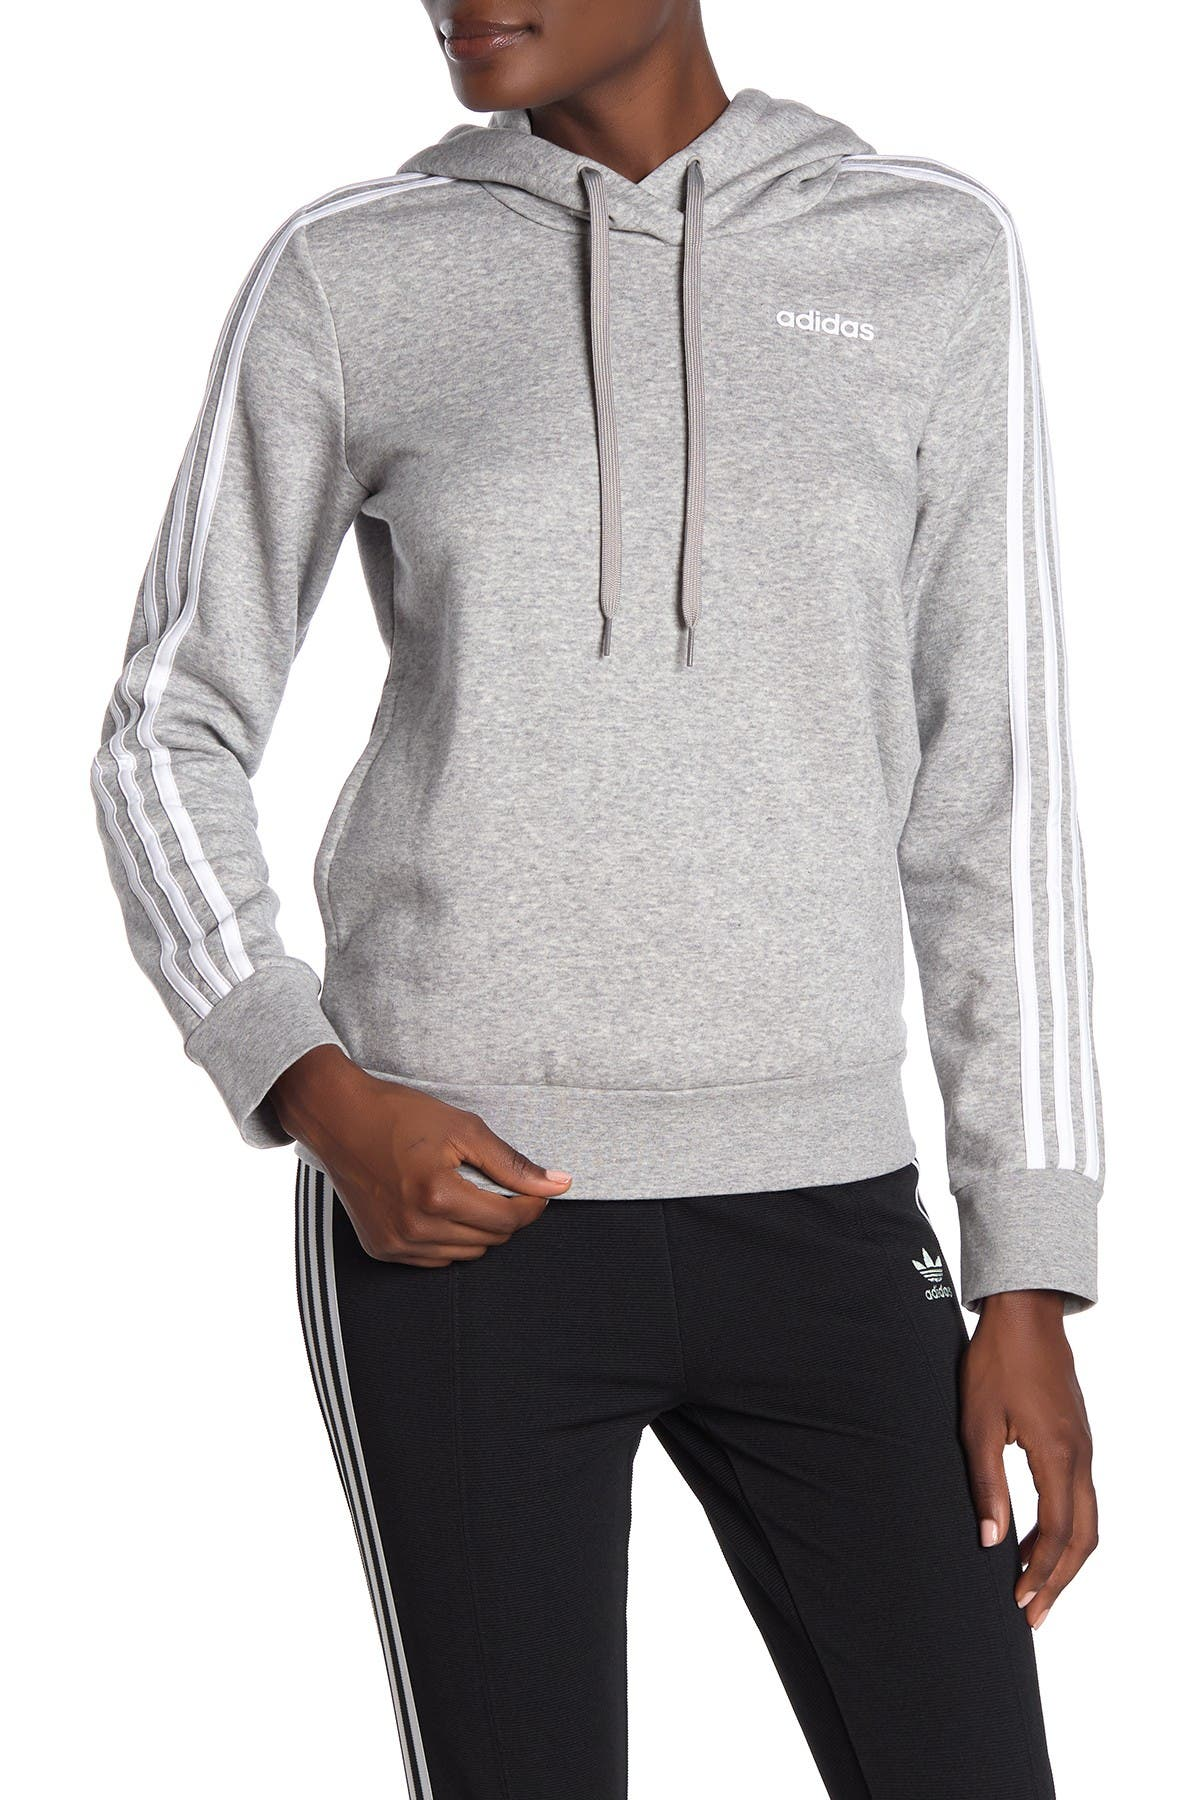 Image of adidas 3-Stripes Drawstring Hoodie